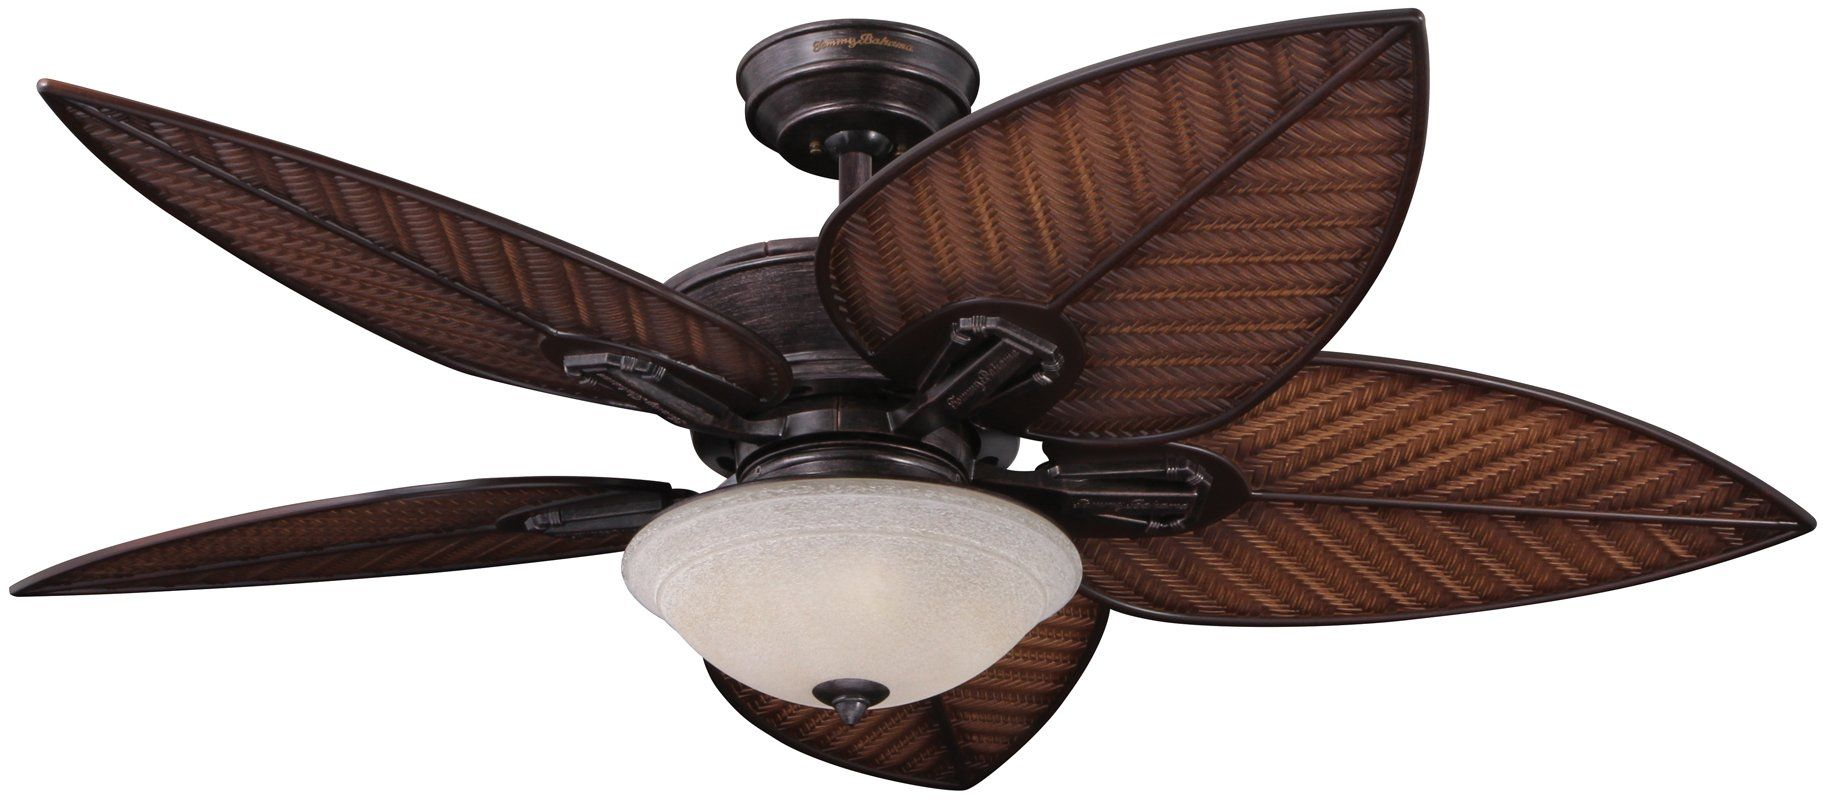 amazon inch com b fans industrial ceilings lighting with ceiling three fan westinghouse brushed blade indoor nickel